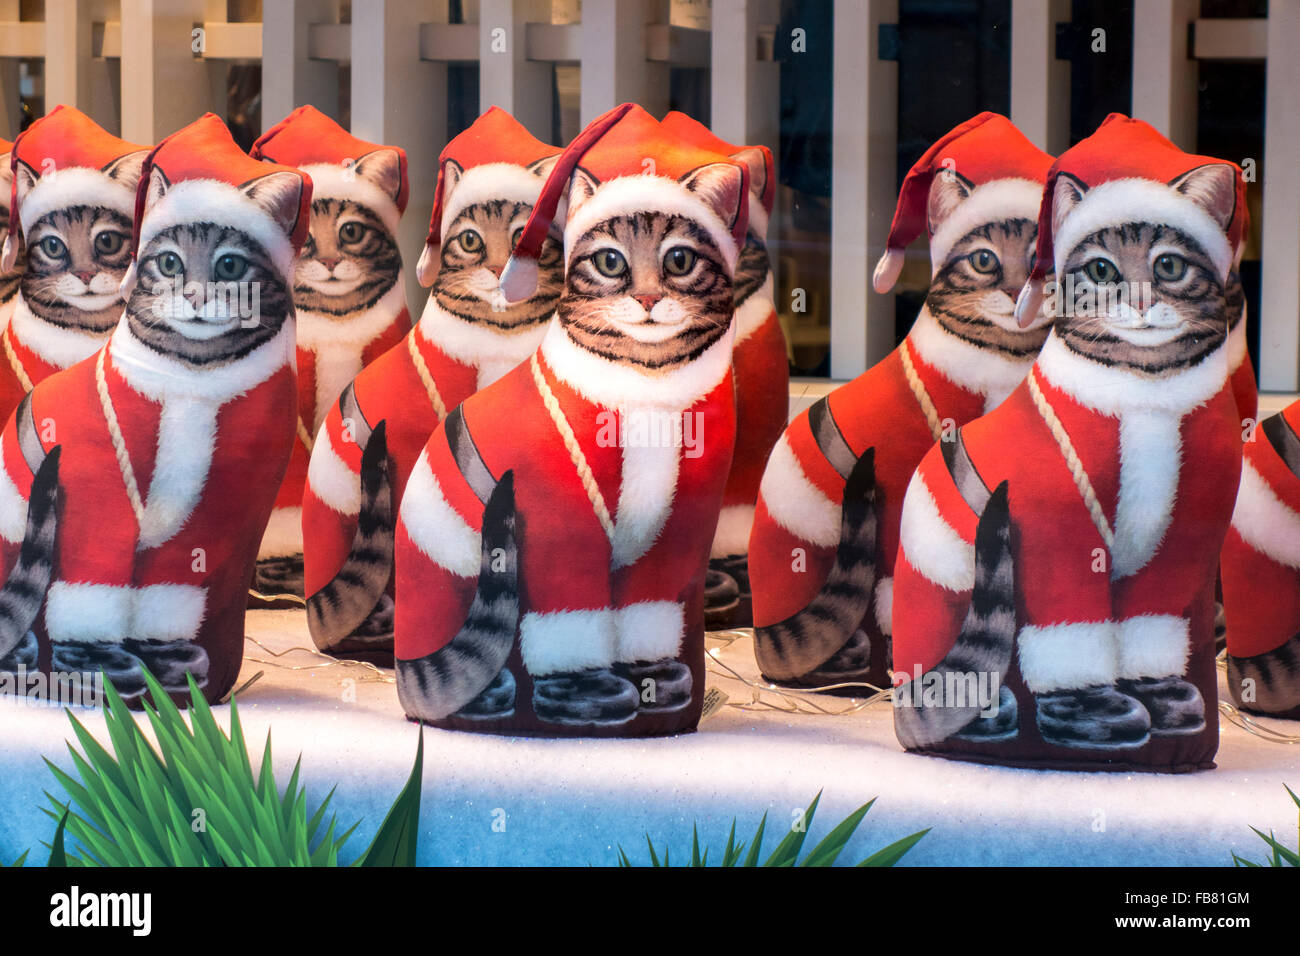 A row of identical Cats dressed as Santa in a shop window. Stock Photo